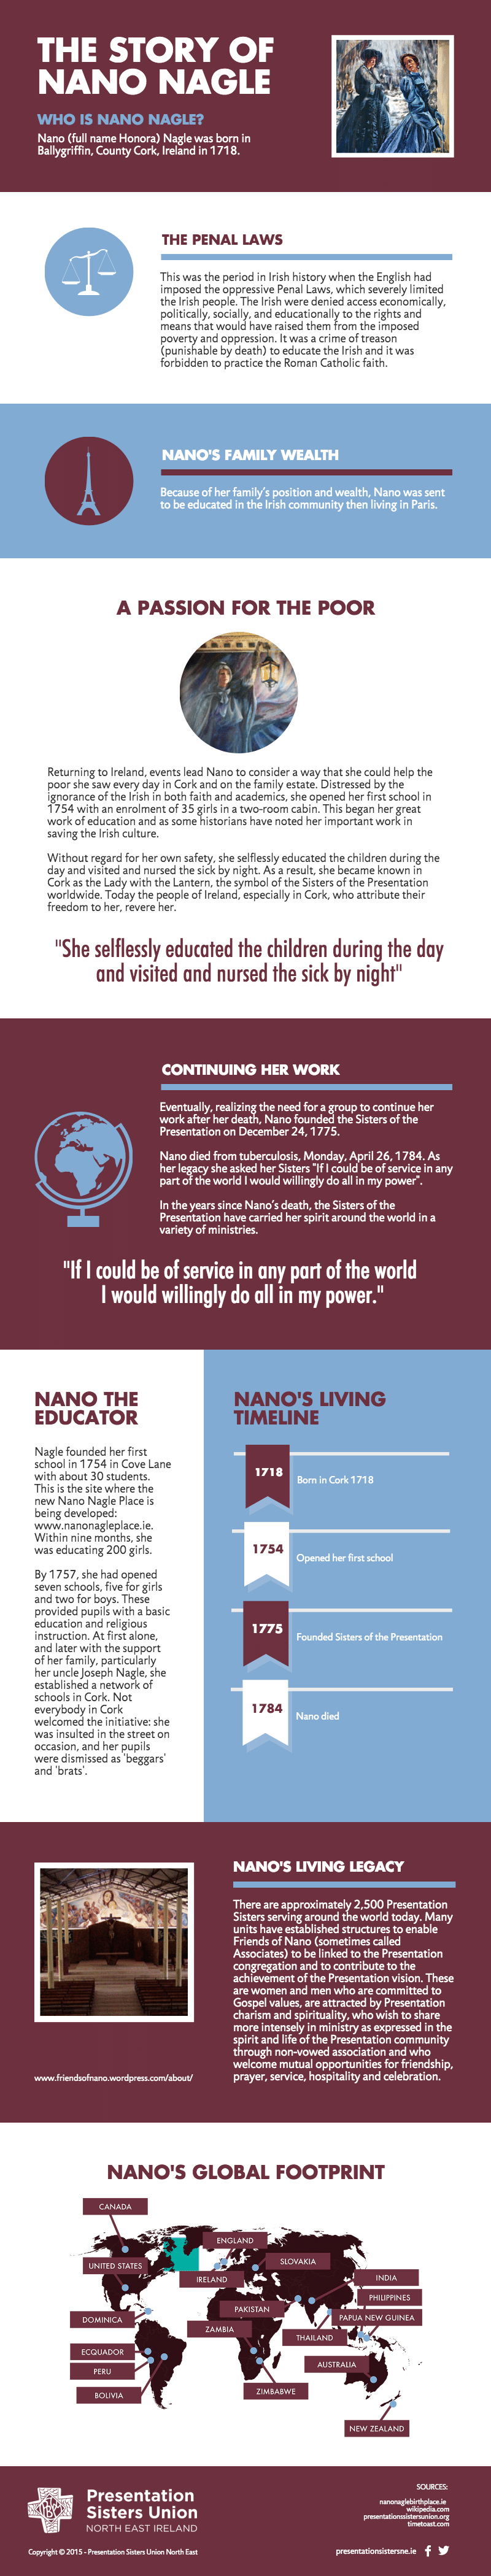 The Story of Nano Nagle - Infographic